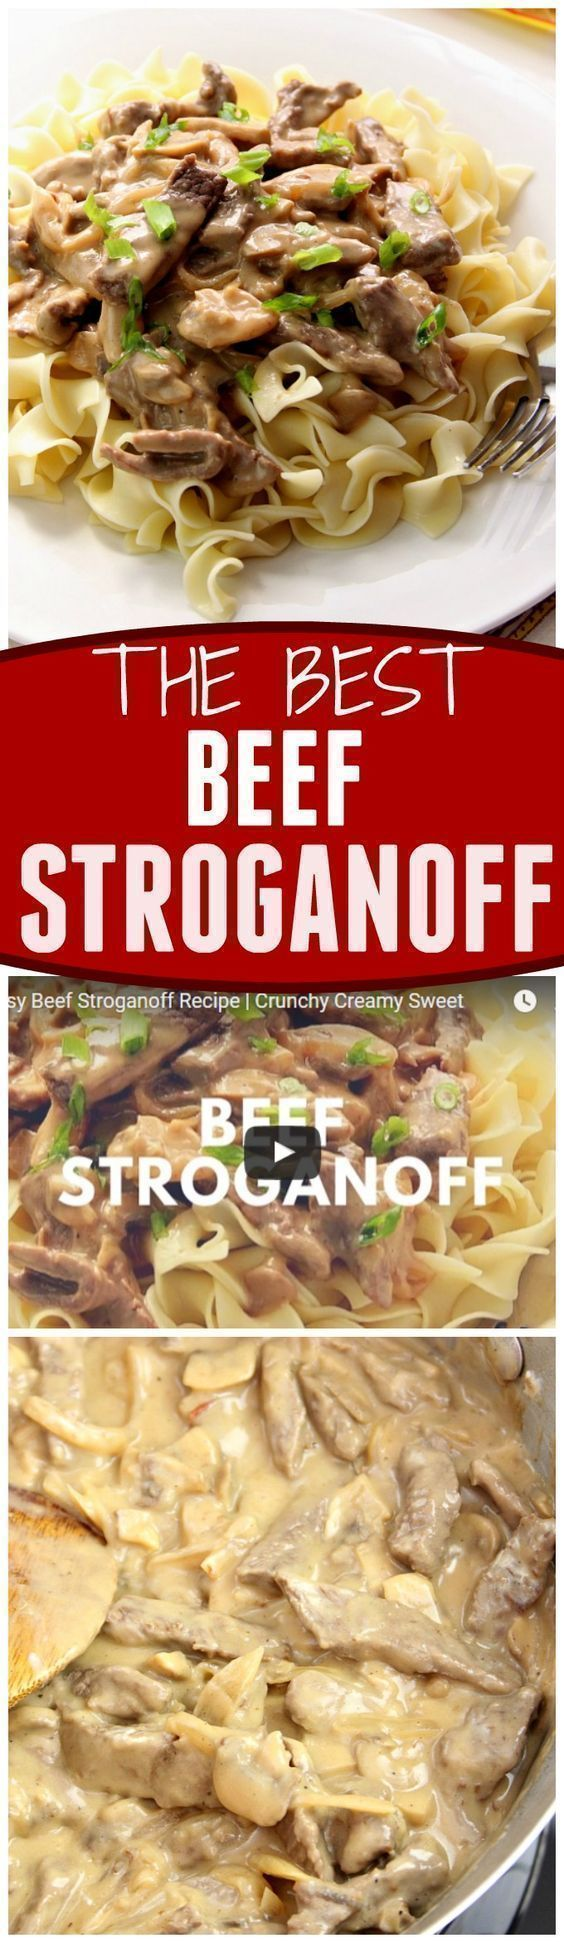 20 Minute Beef Stroganoff Recipe Make This Classic Dish Right In Your Kitchen With Just A Few Ingredients And Only 20 Recipes Beef Recipes Stroganoff Recipe